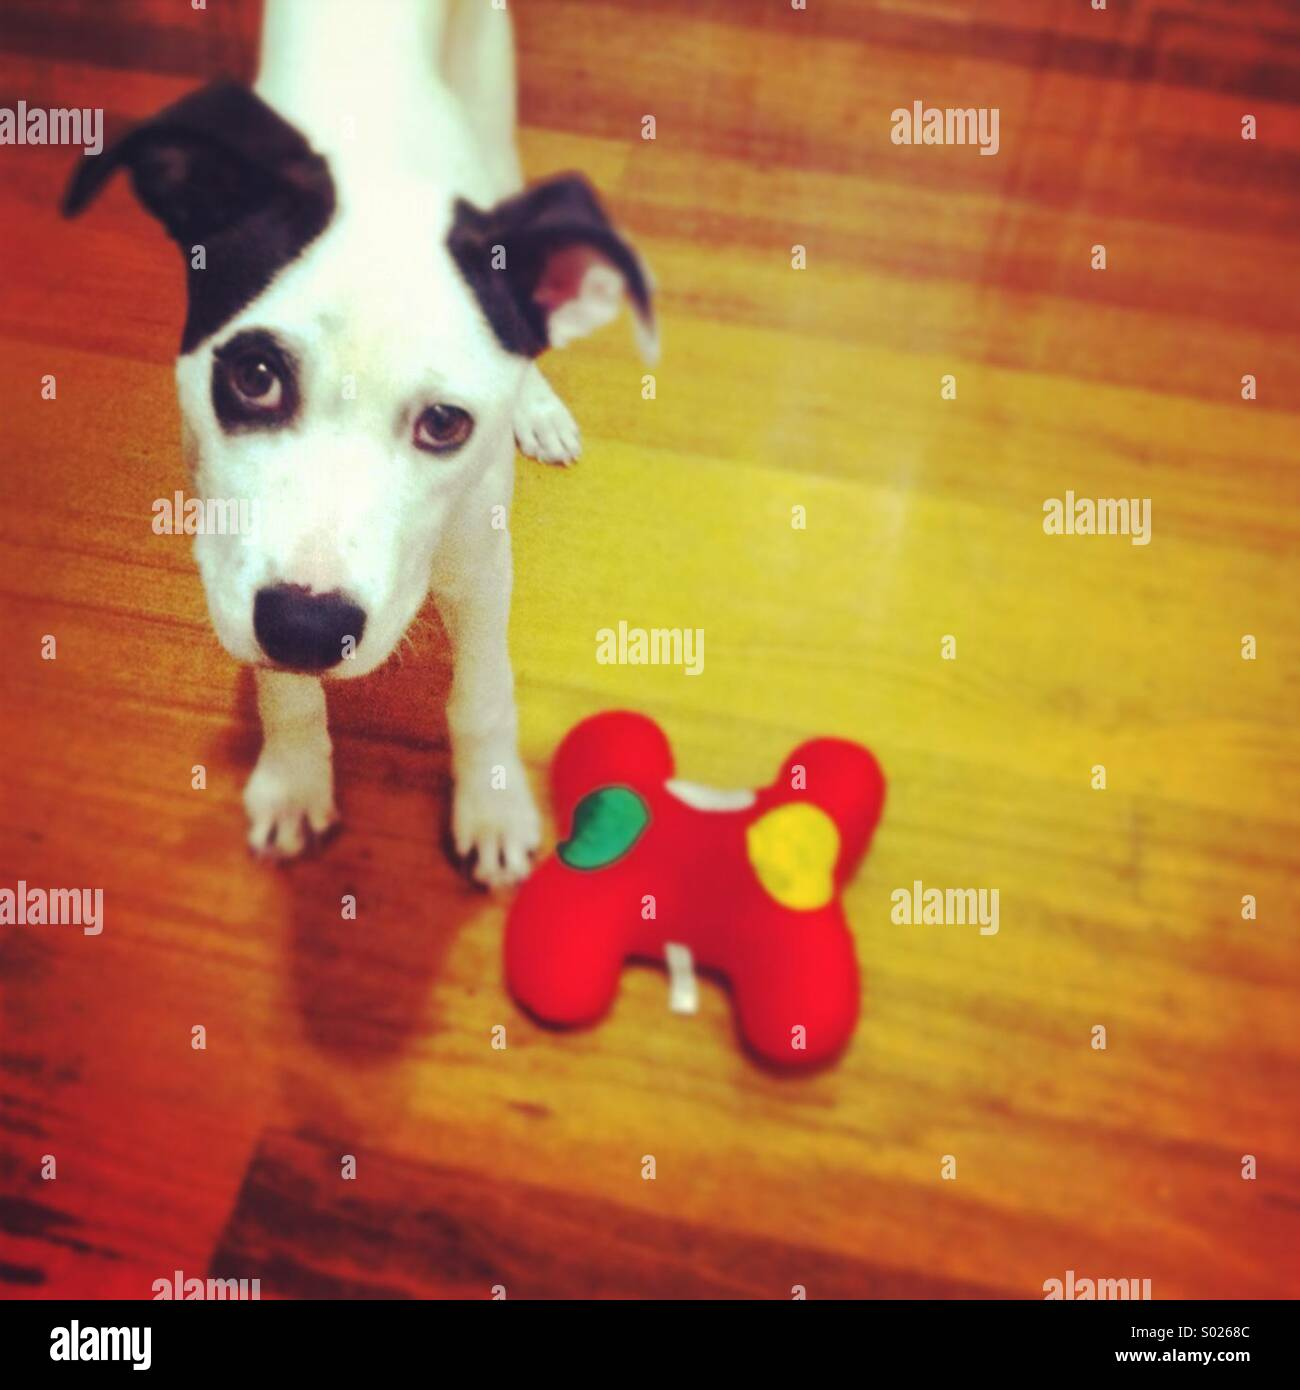 Black and white puppy with red toy - Stock Image